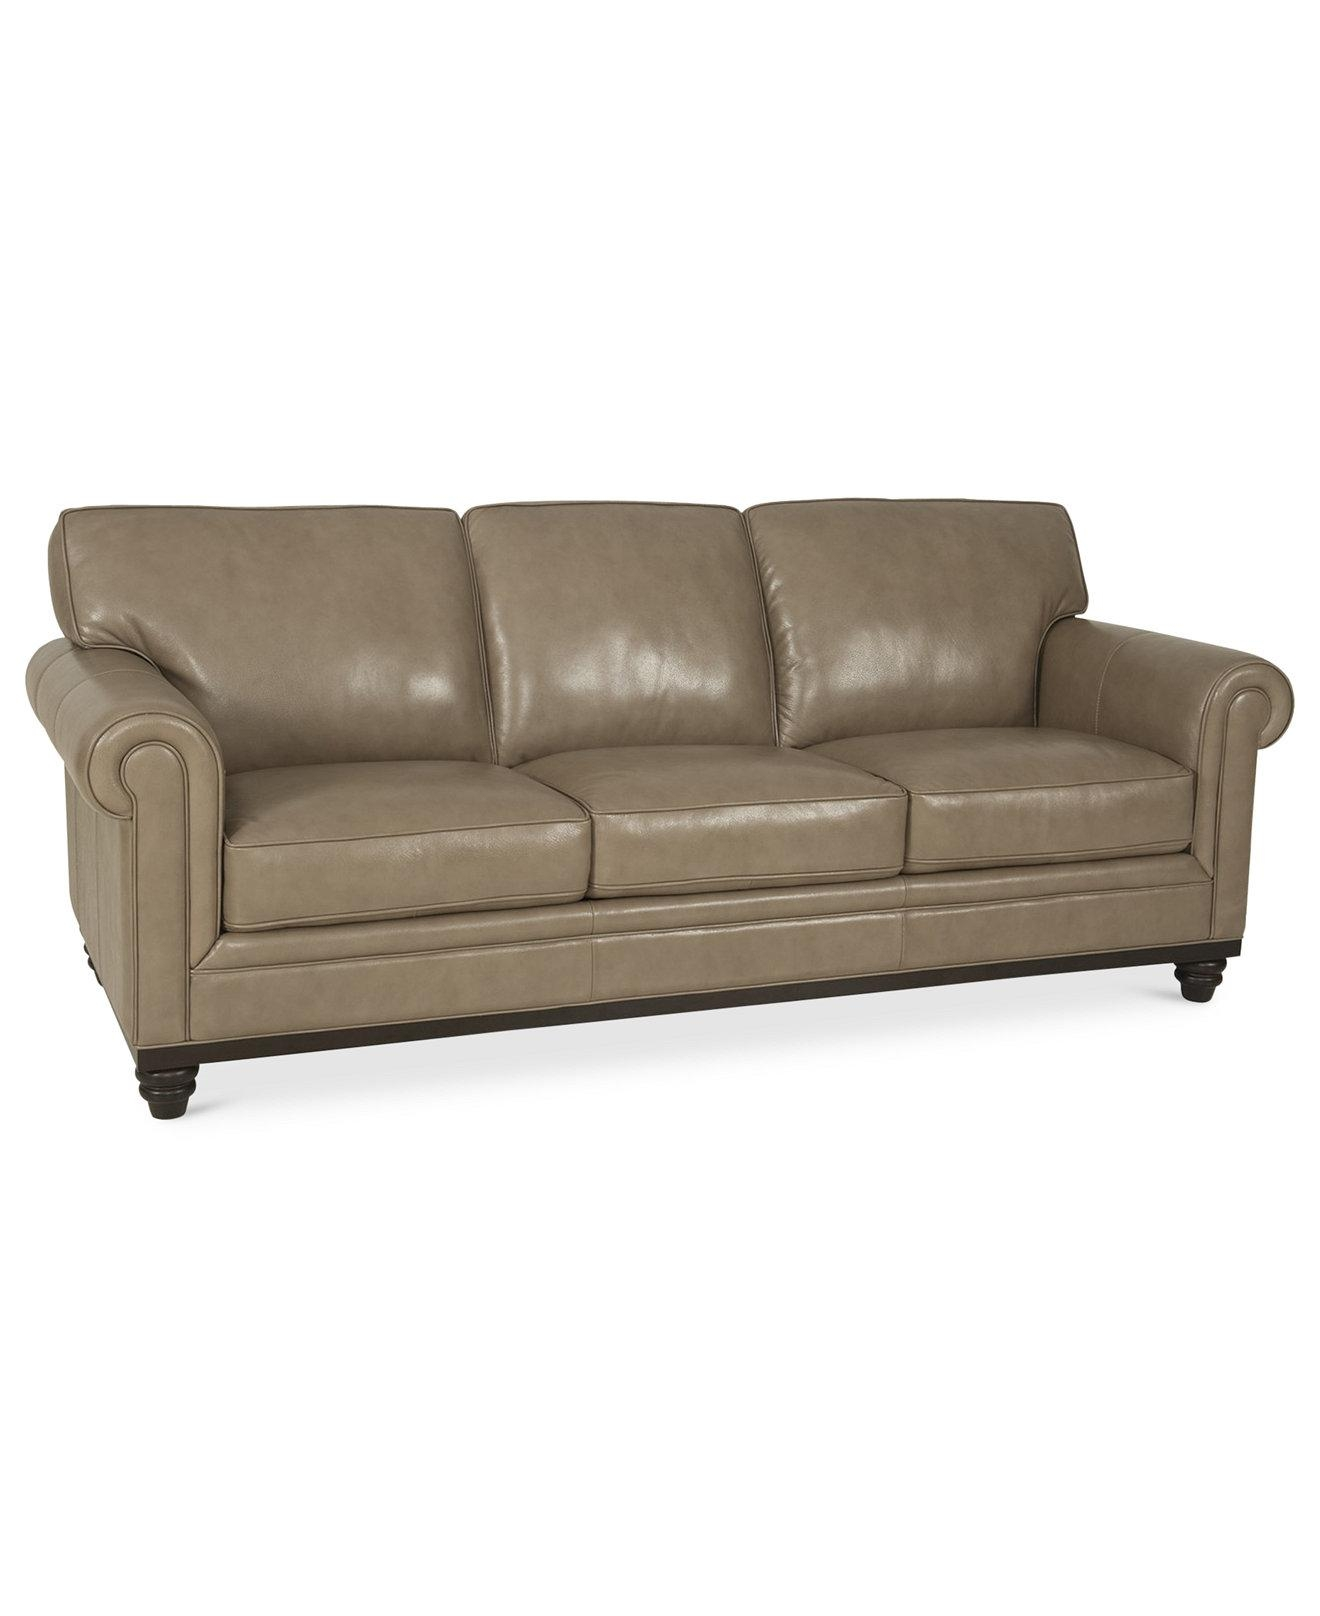 Macys Furniture Clearance Center: 20 Best Collection Of Macys Sofas